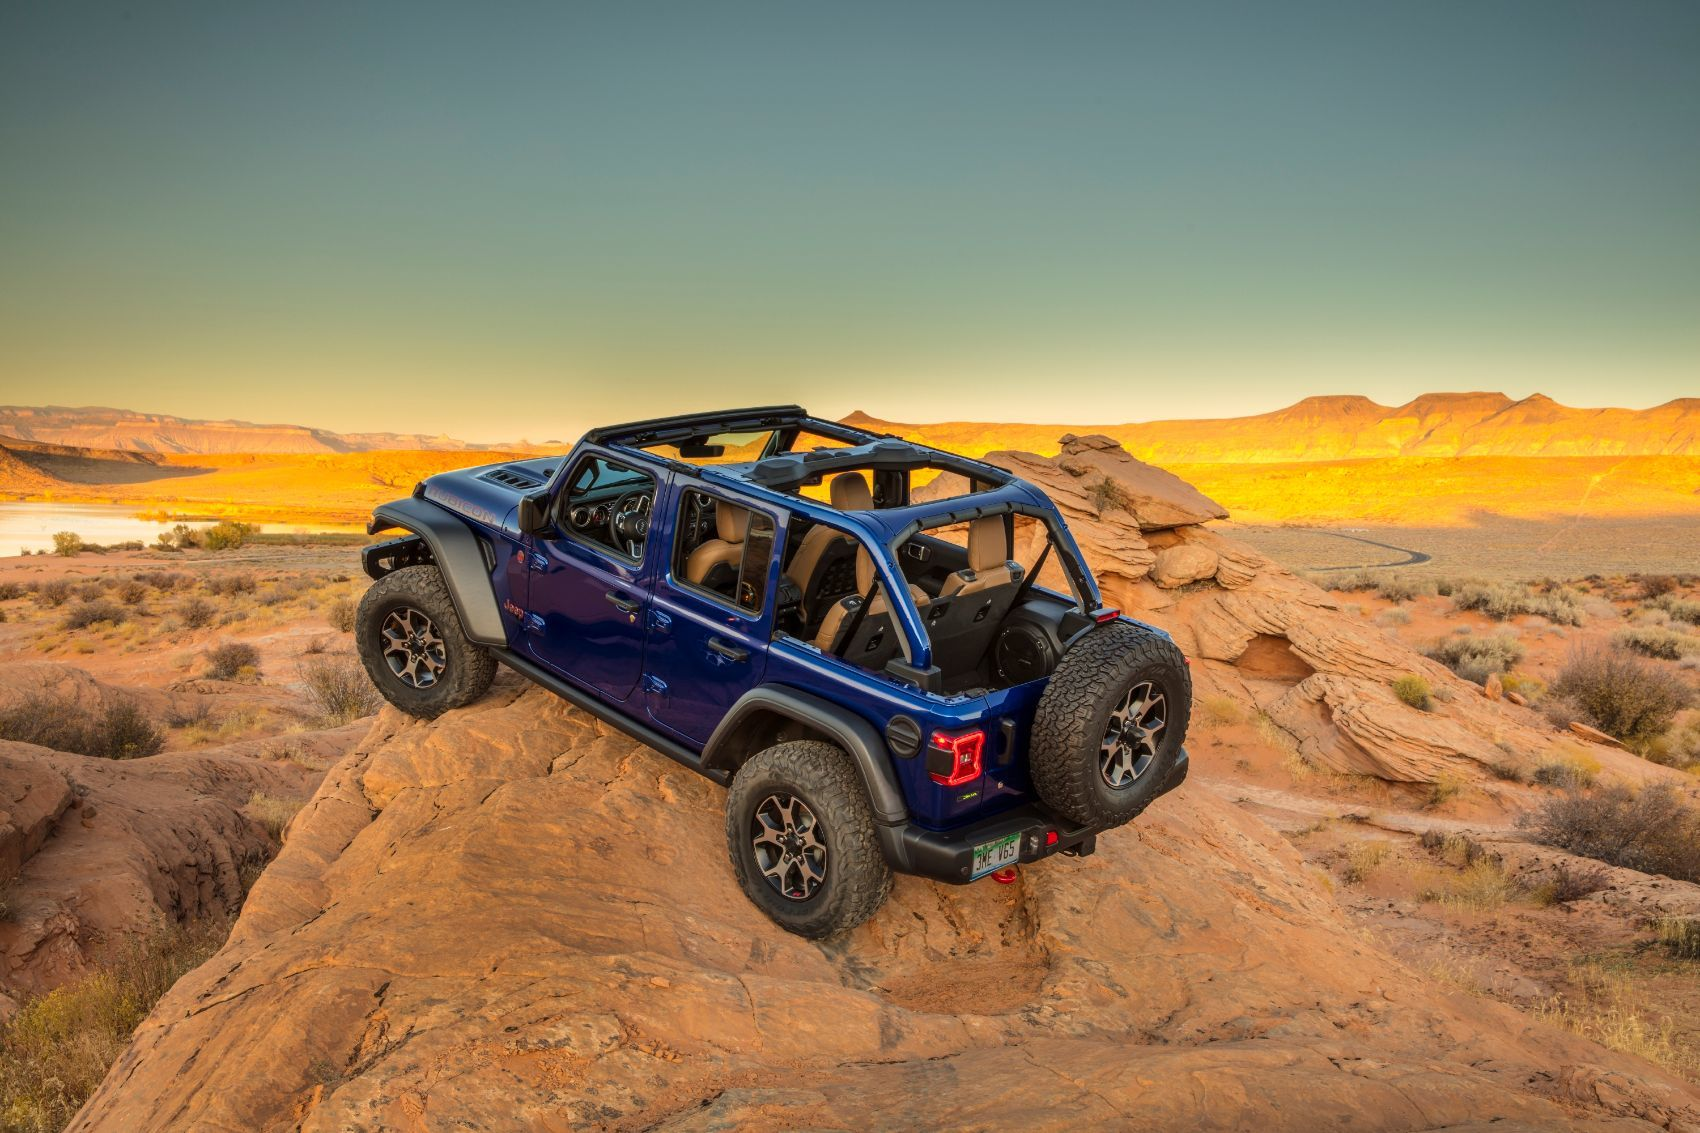 2020 jeep wrangler unlimited rubicon review: the king of